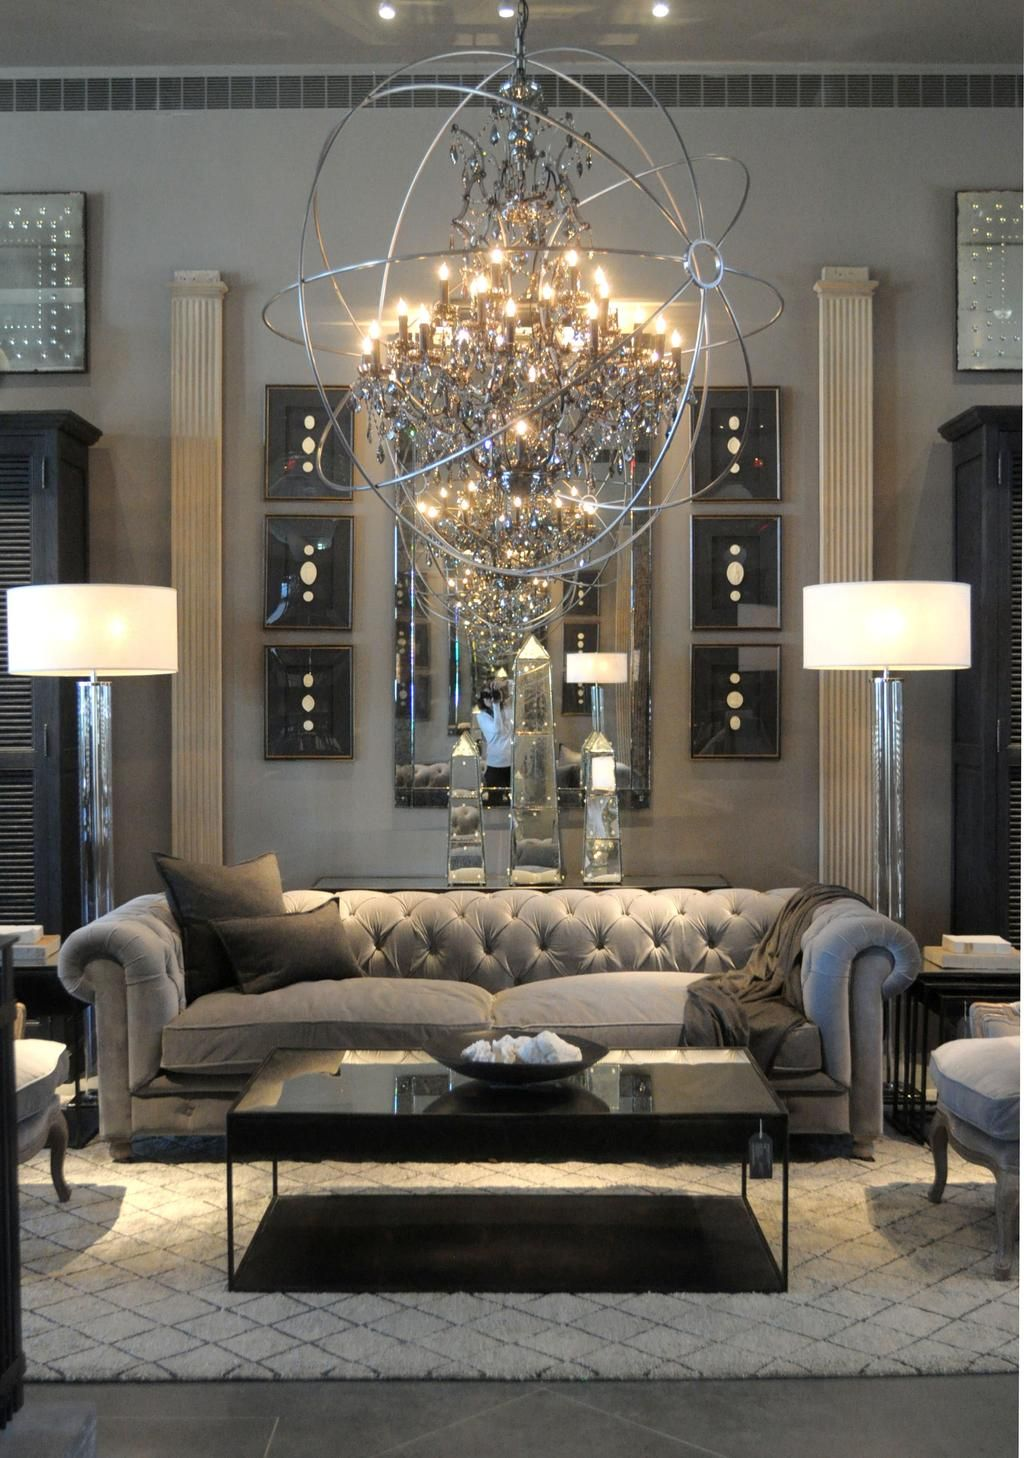 Home Design Business Ideas: Look Inside Restoration Hardware's New RH Atlanta Design